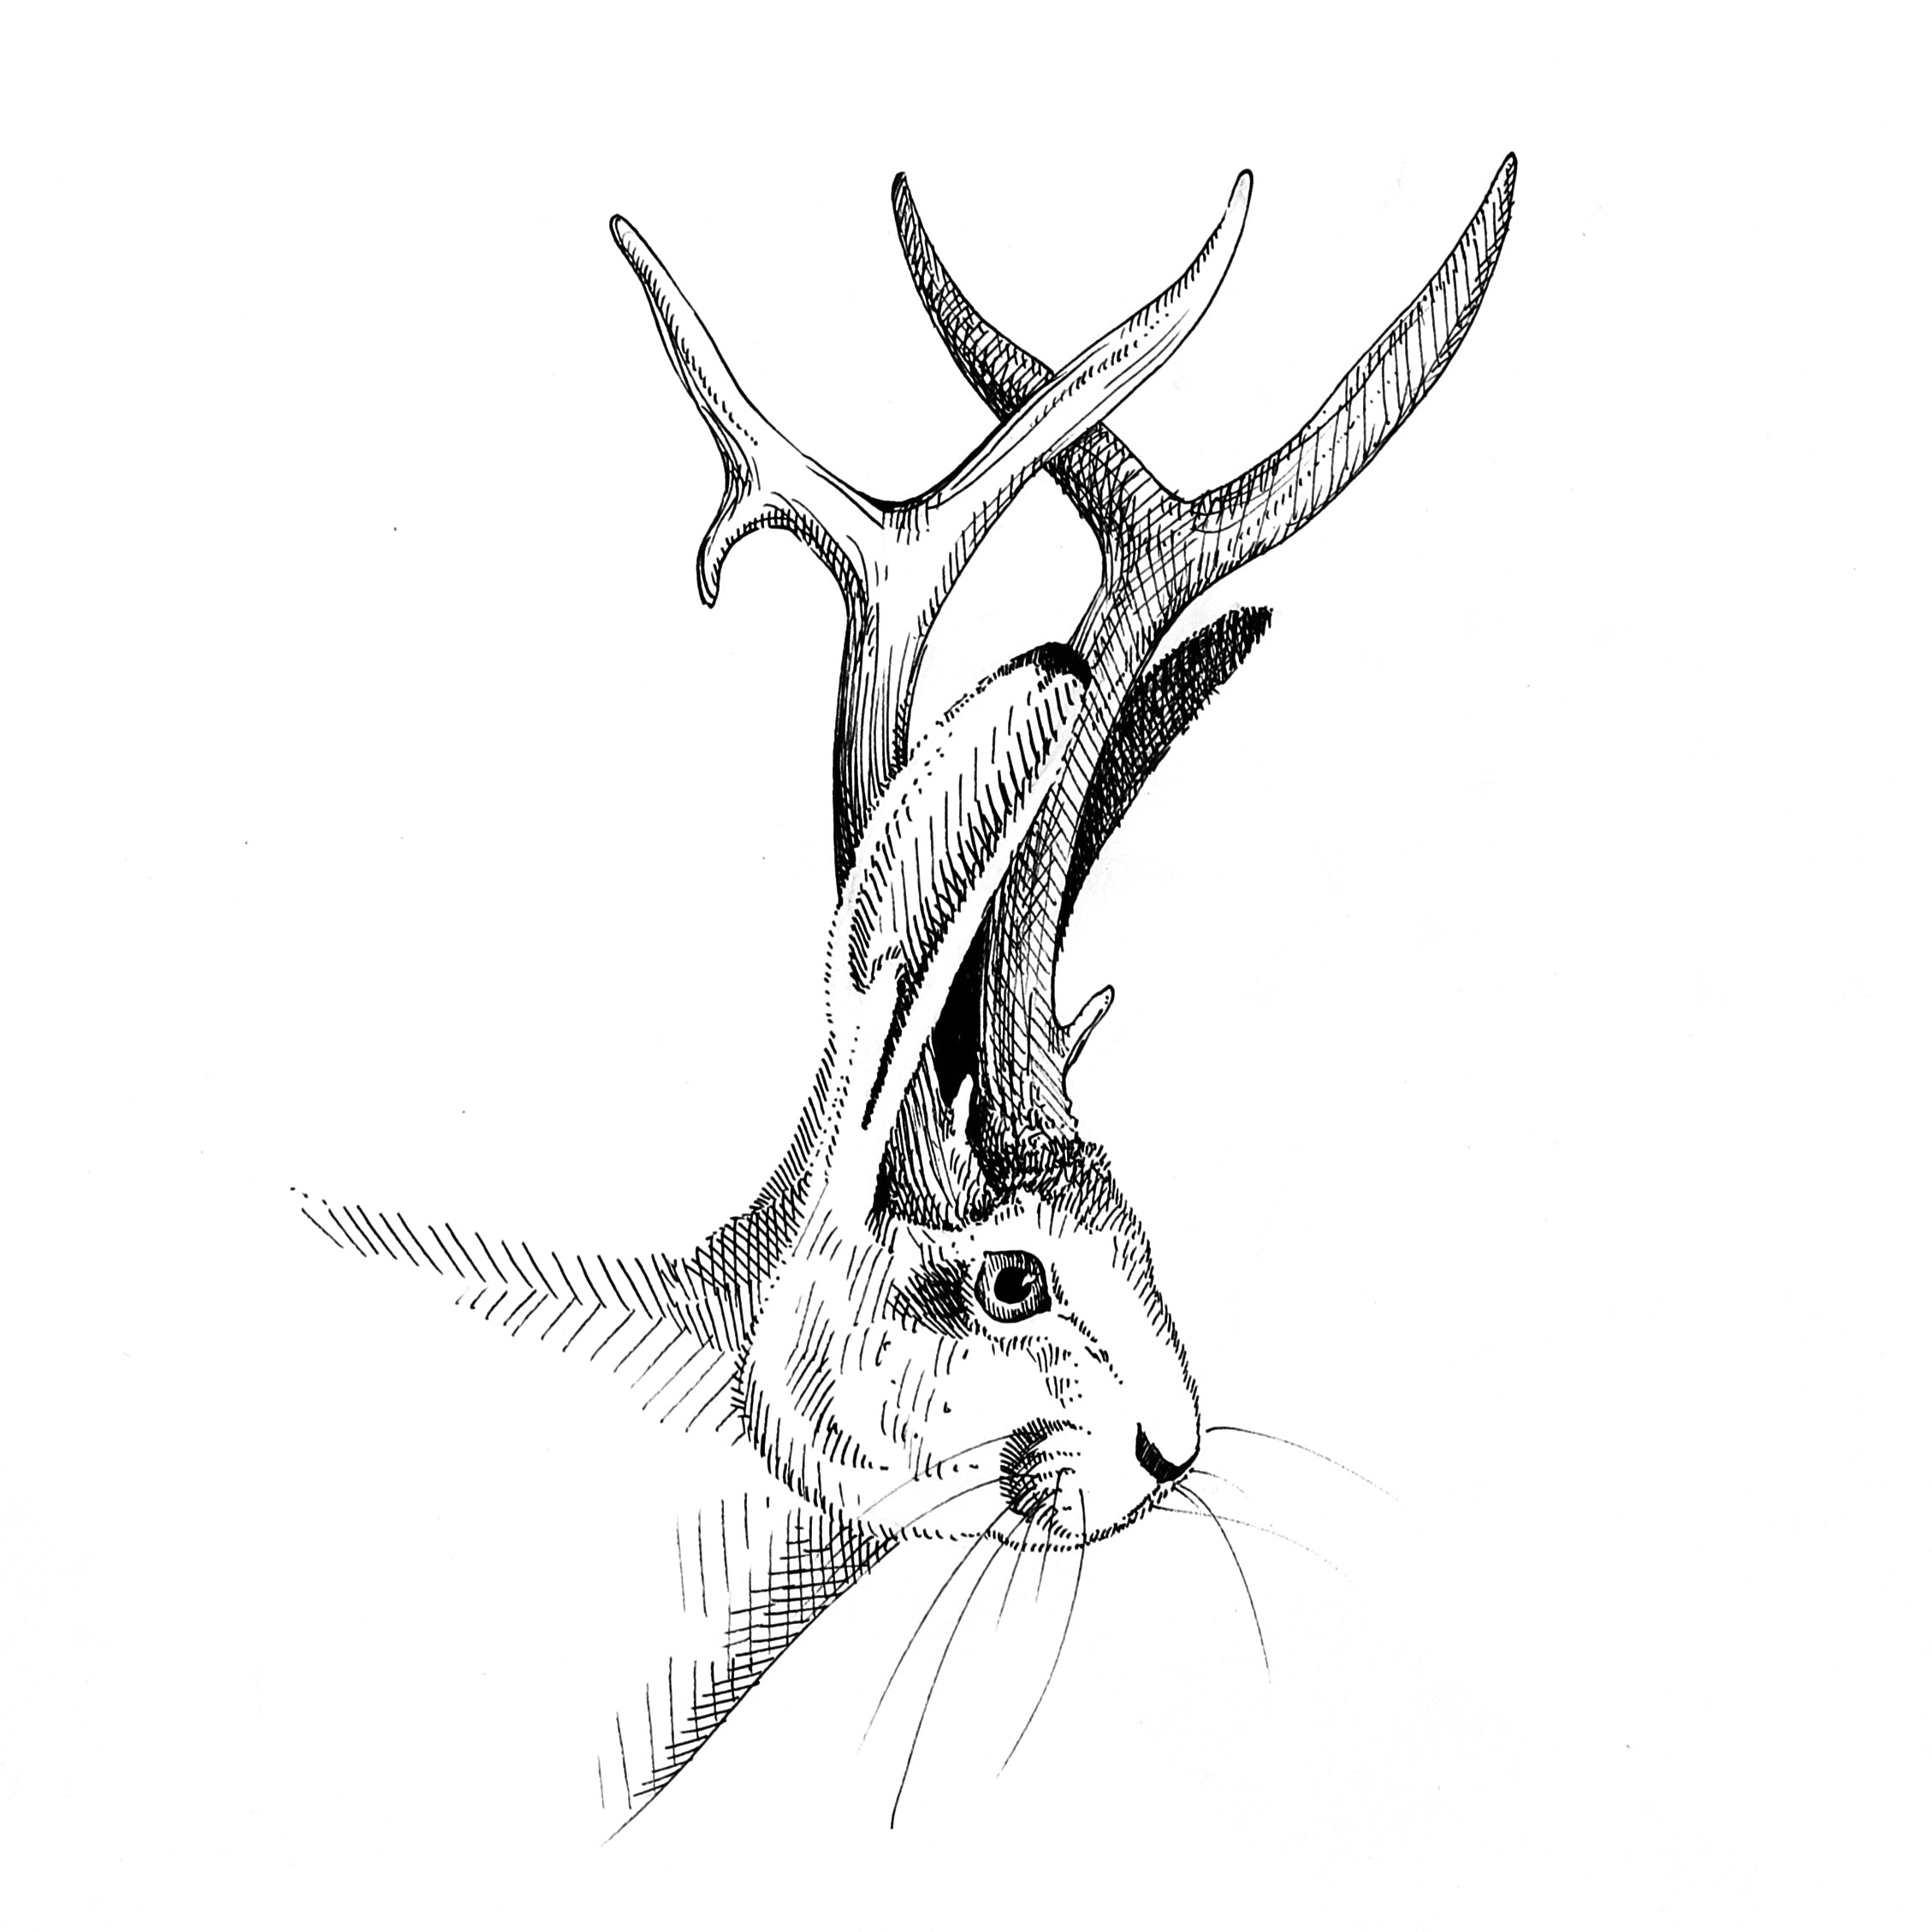 Jackalope Original Artwork